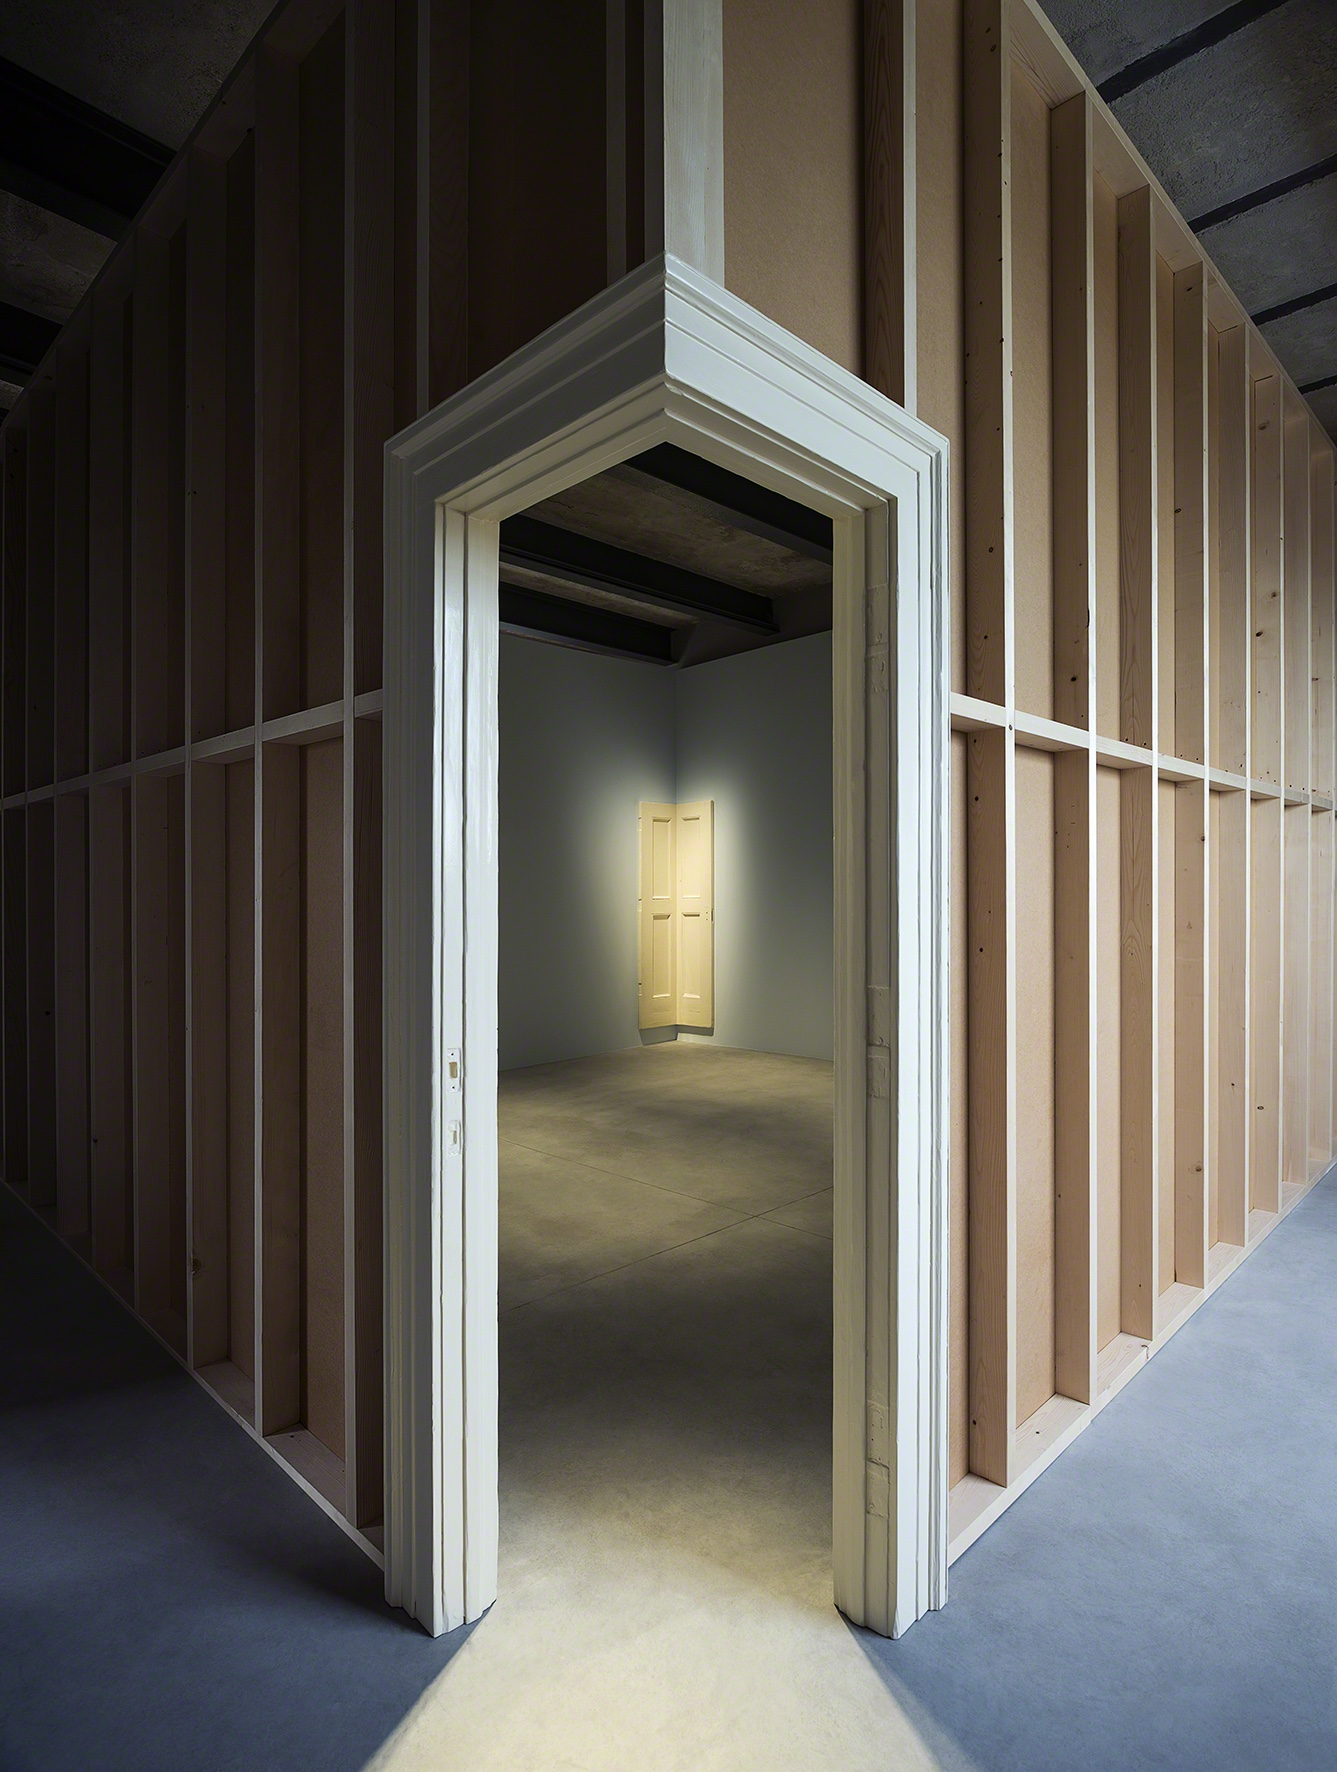 Robert Gober, Corner Door and Doorframe, 2014-2015. Photo: Attilio Maranzano. Courtesy: Fondazione Prada.